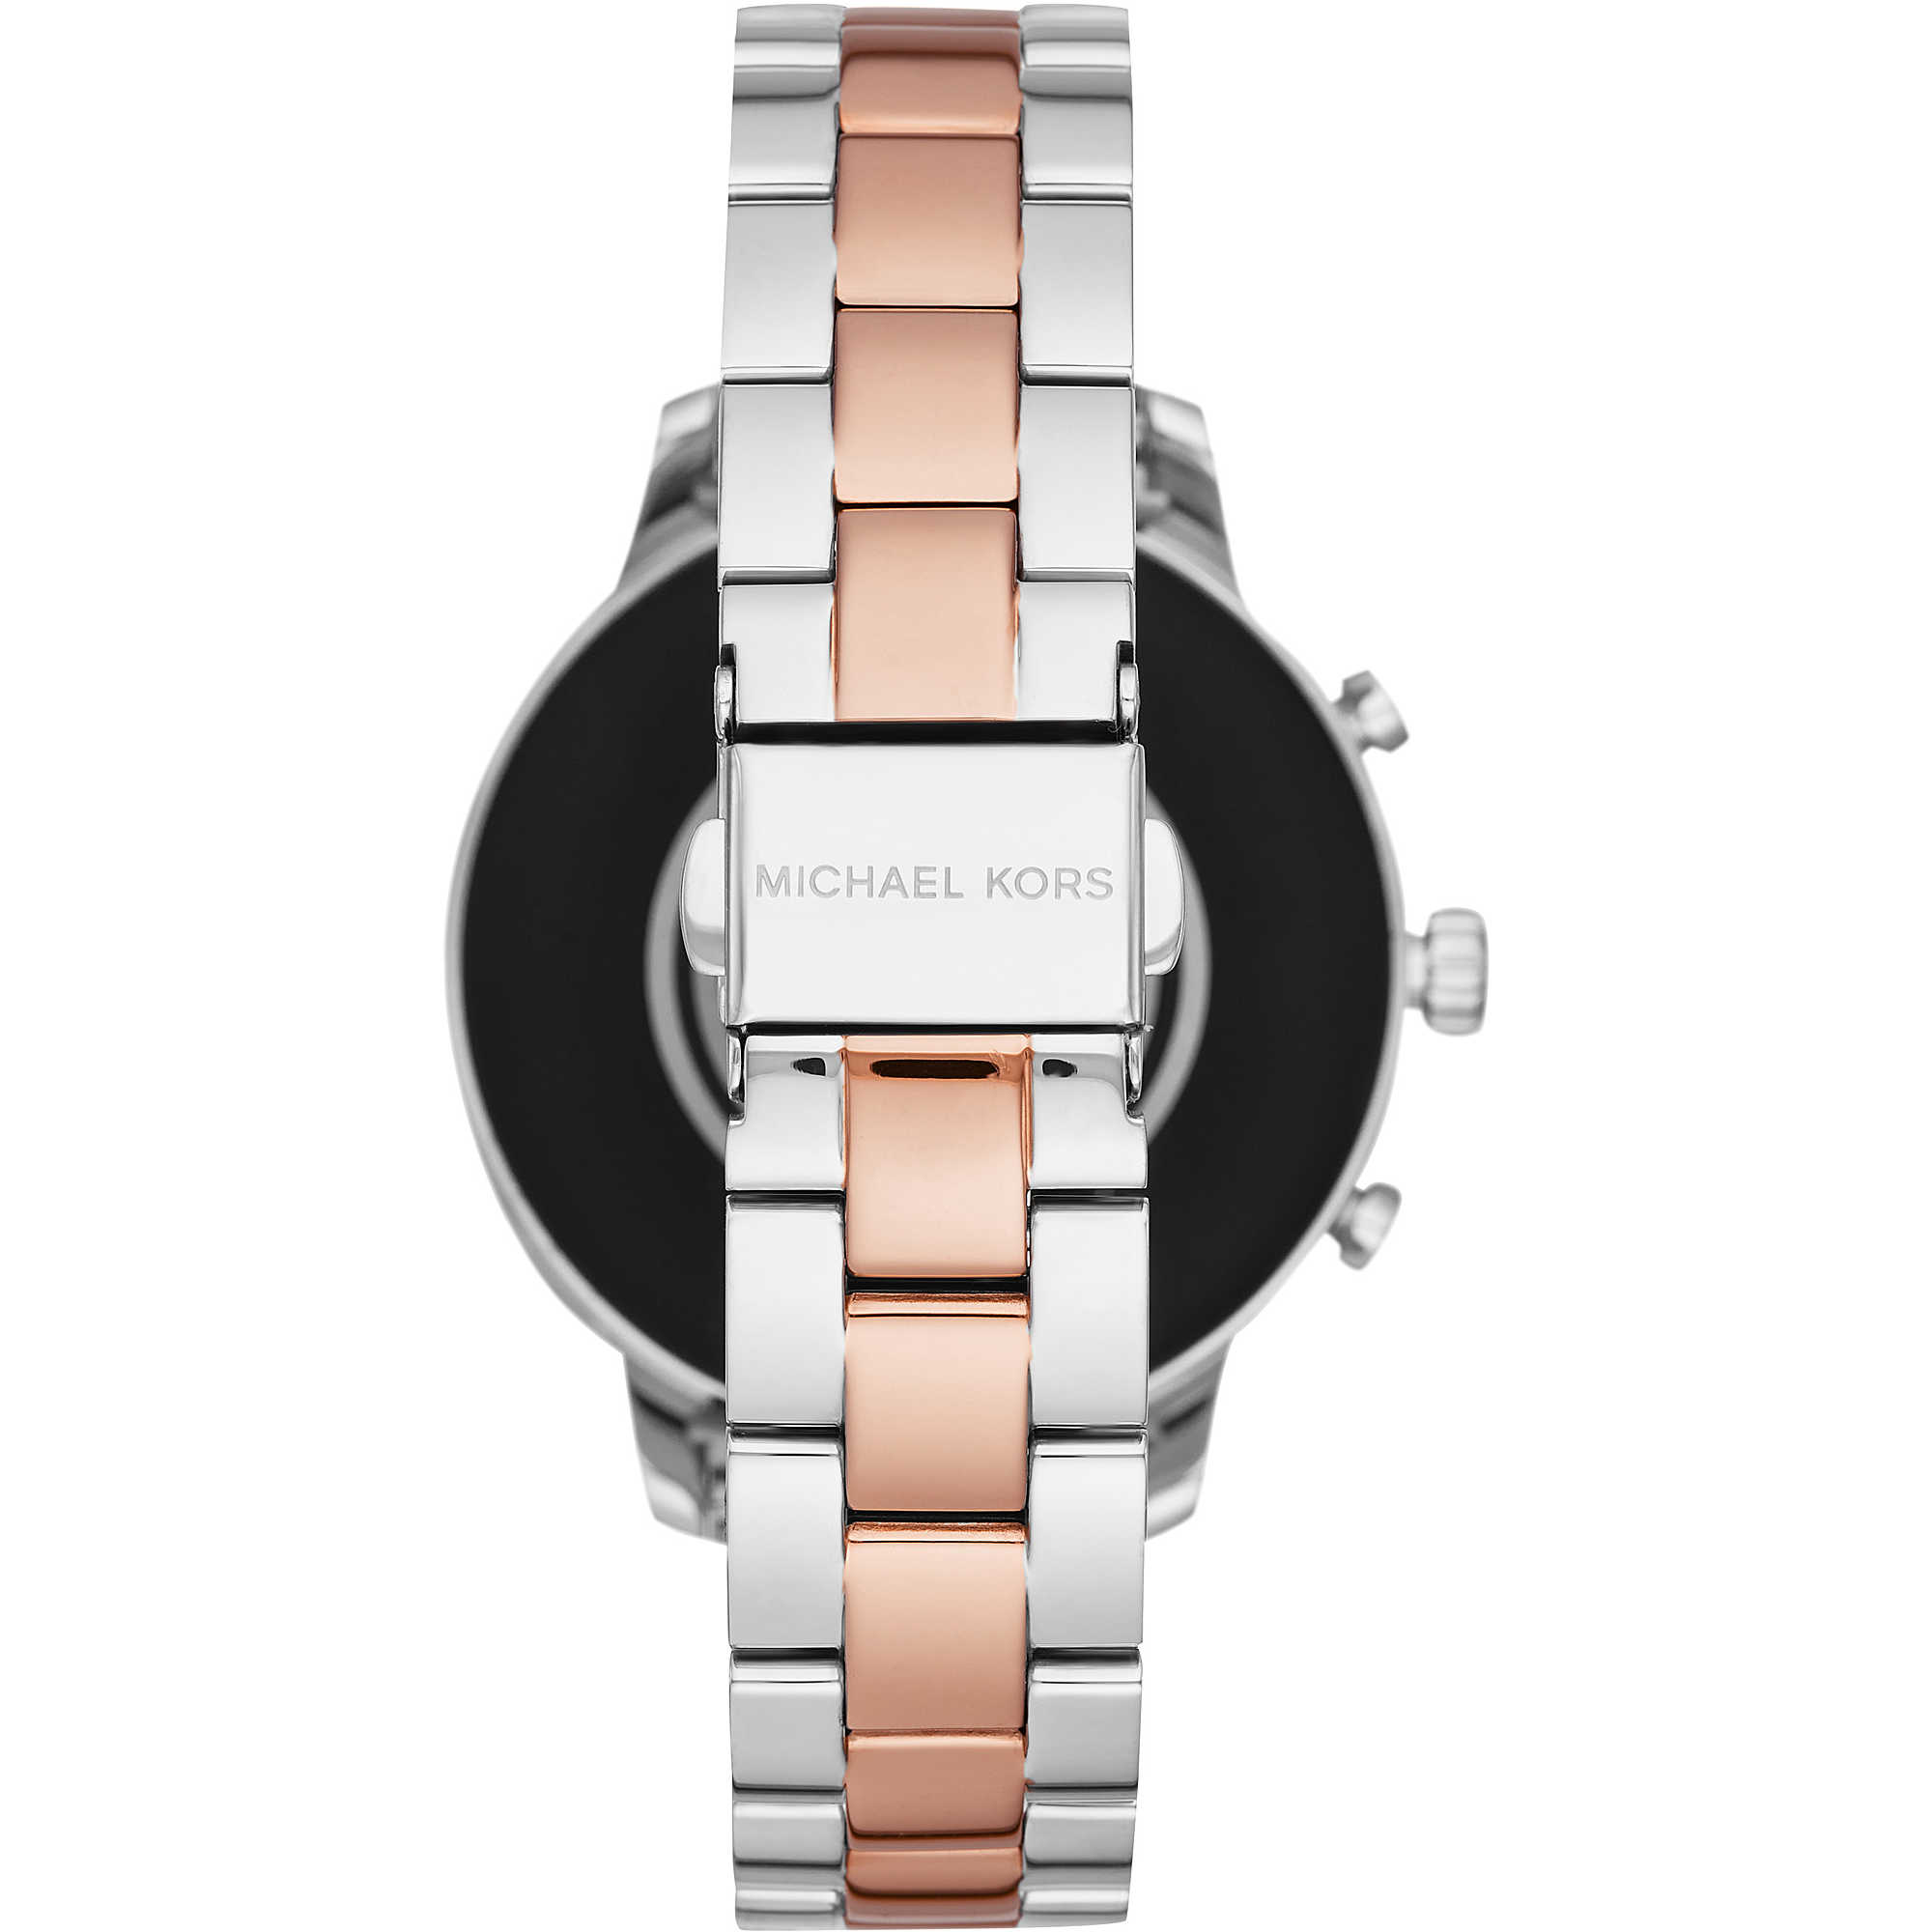 a5f164526f orologio Smartwatch donna Michael Kors Runway MKT5056 Smartwatches ...